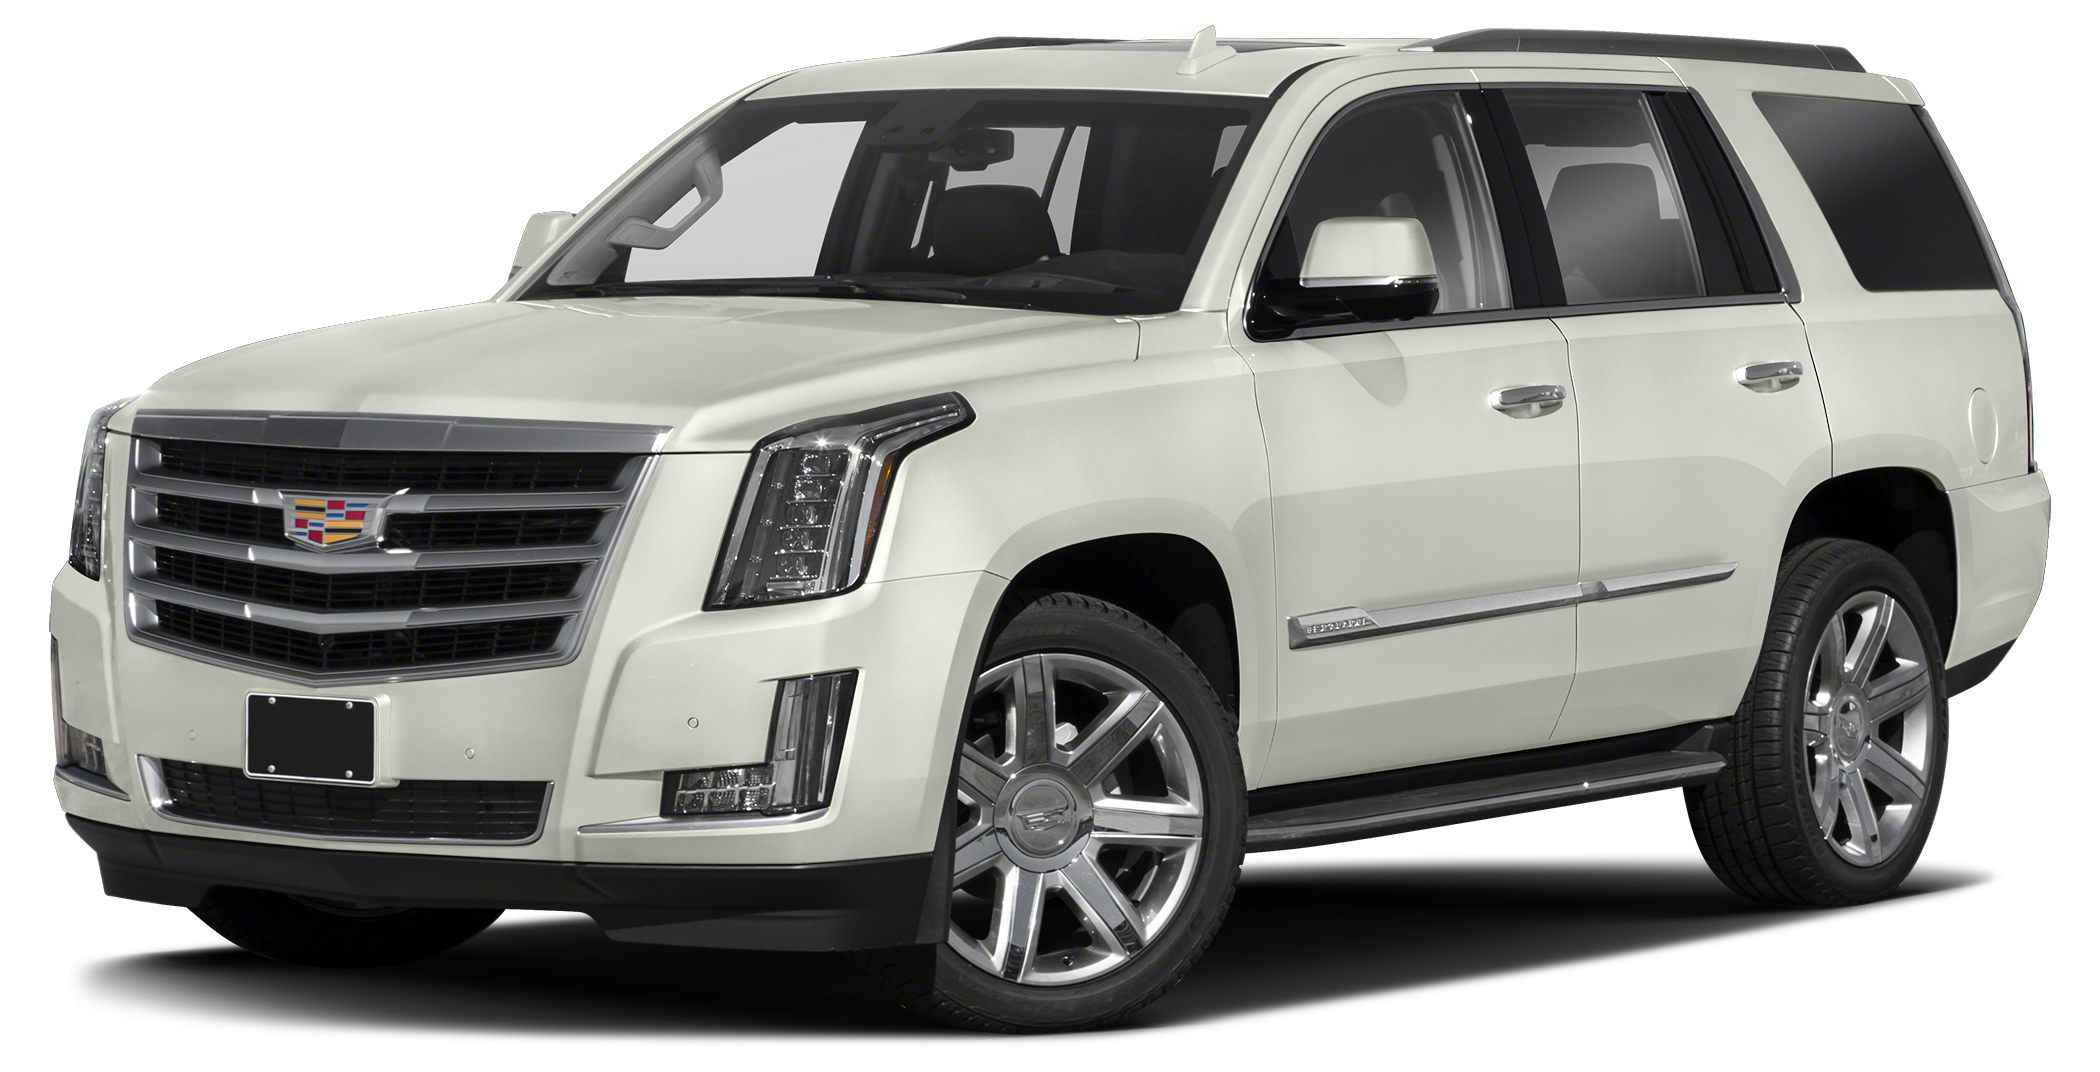 2017 Cadillac Escalade Luxury The well-recognized Escalade has been among the Kings of the SUV fam